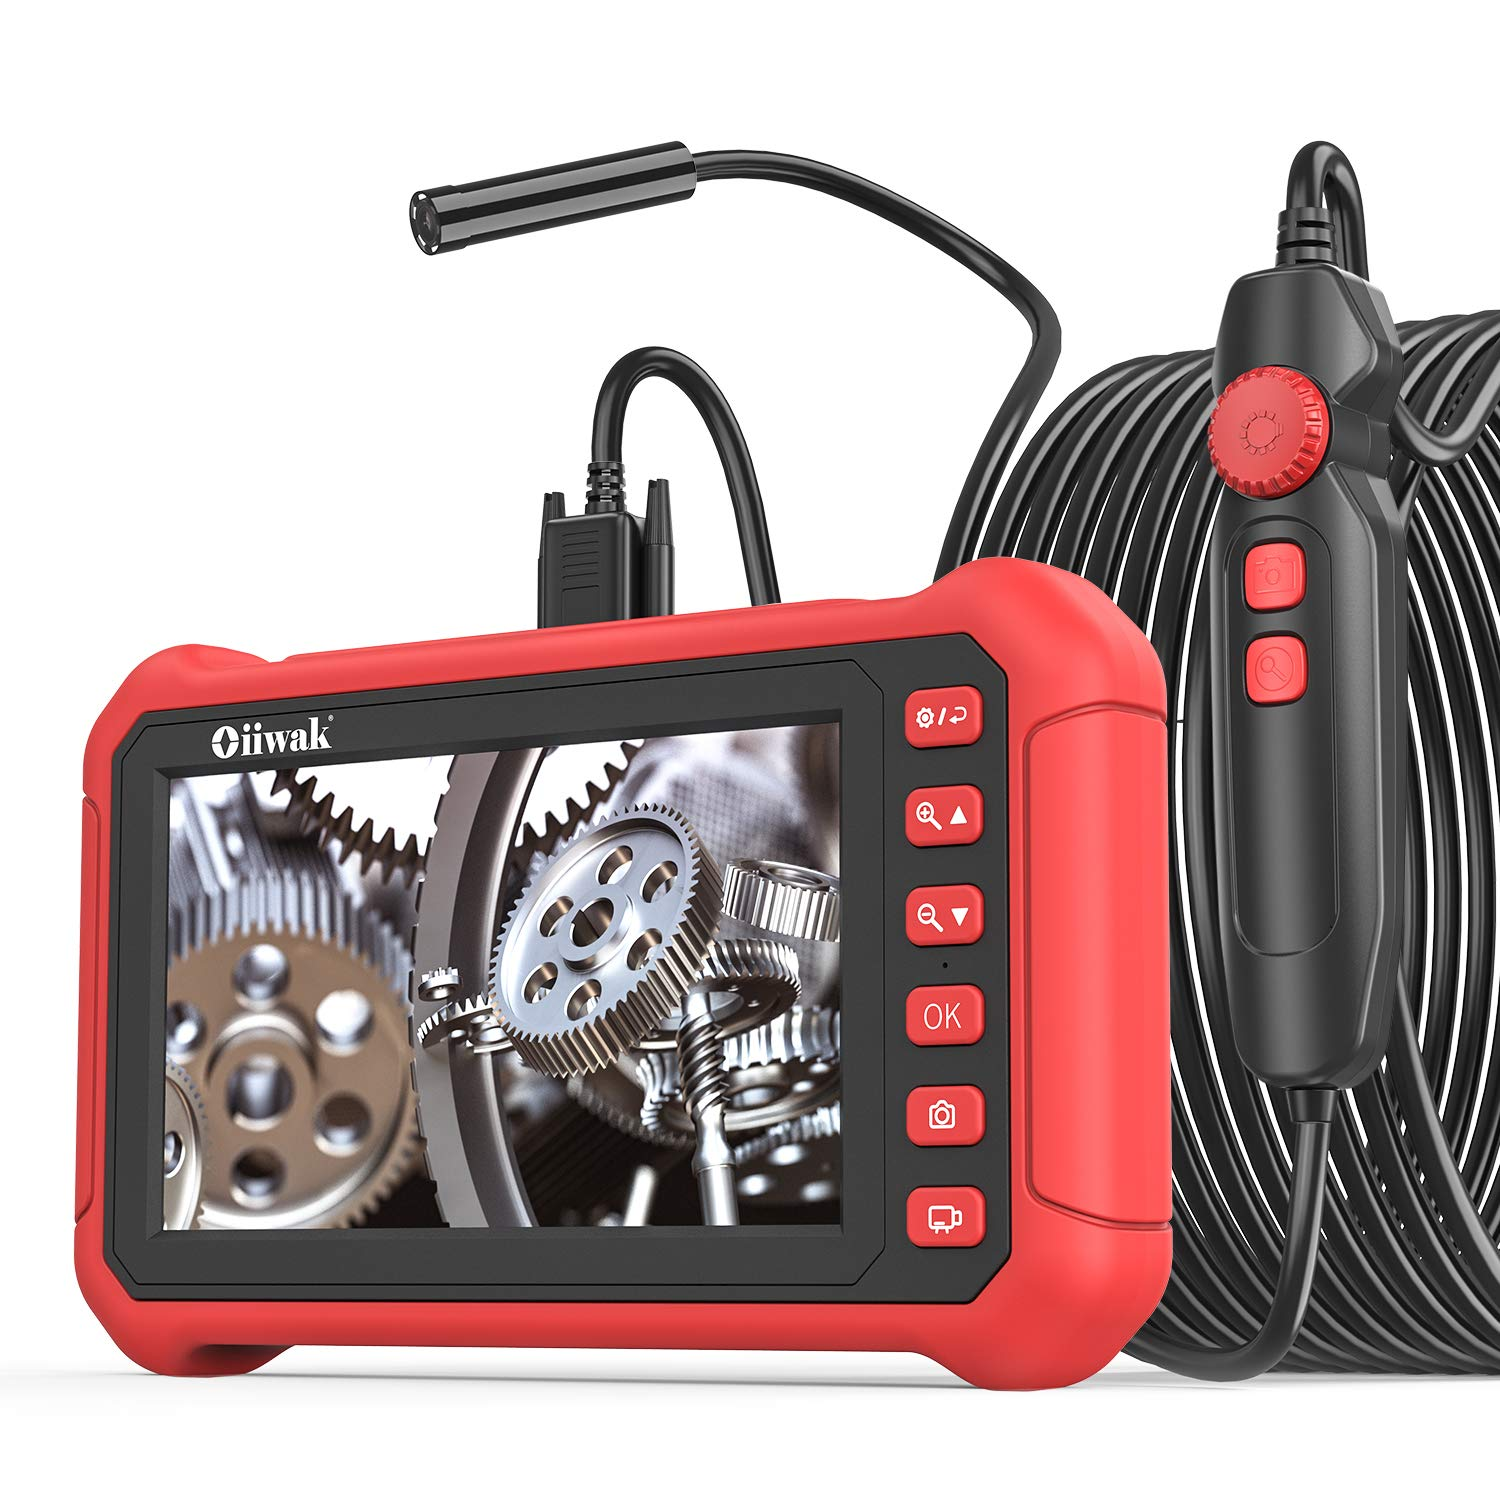 Oiiwak Industrial Endoscope 5.0 MP Borescope Inspection Camera with 7